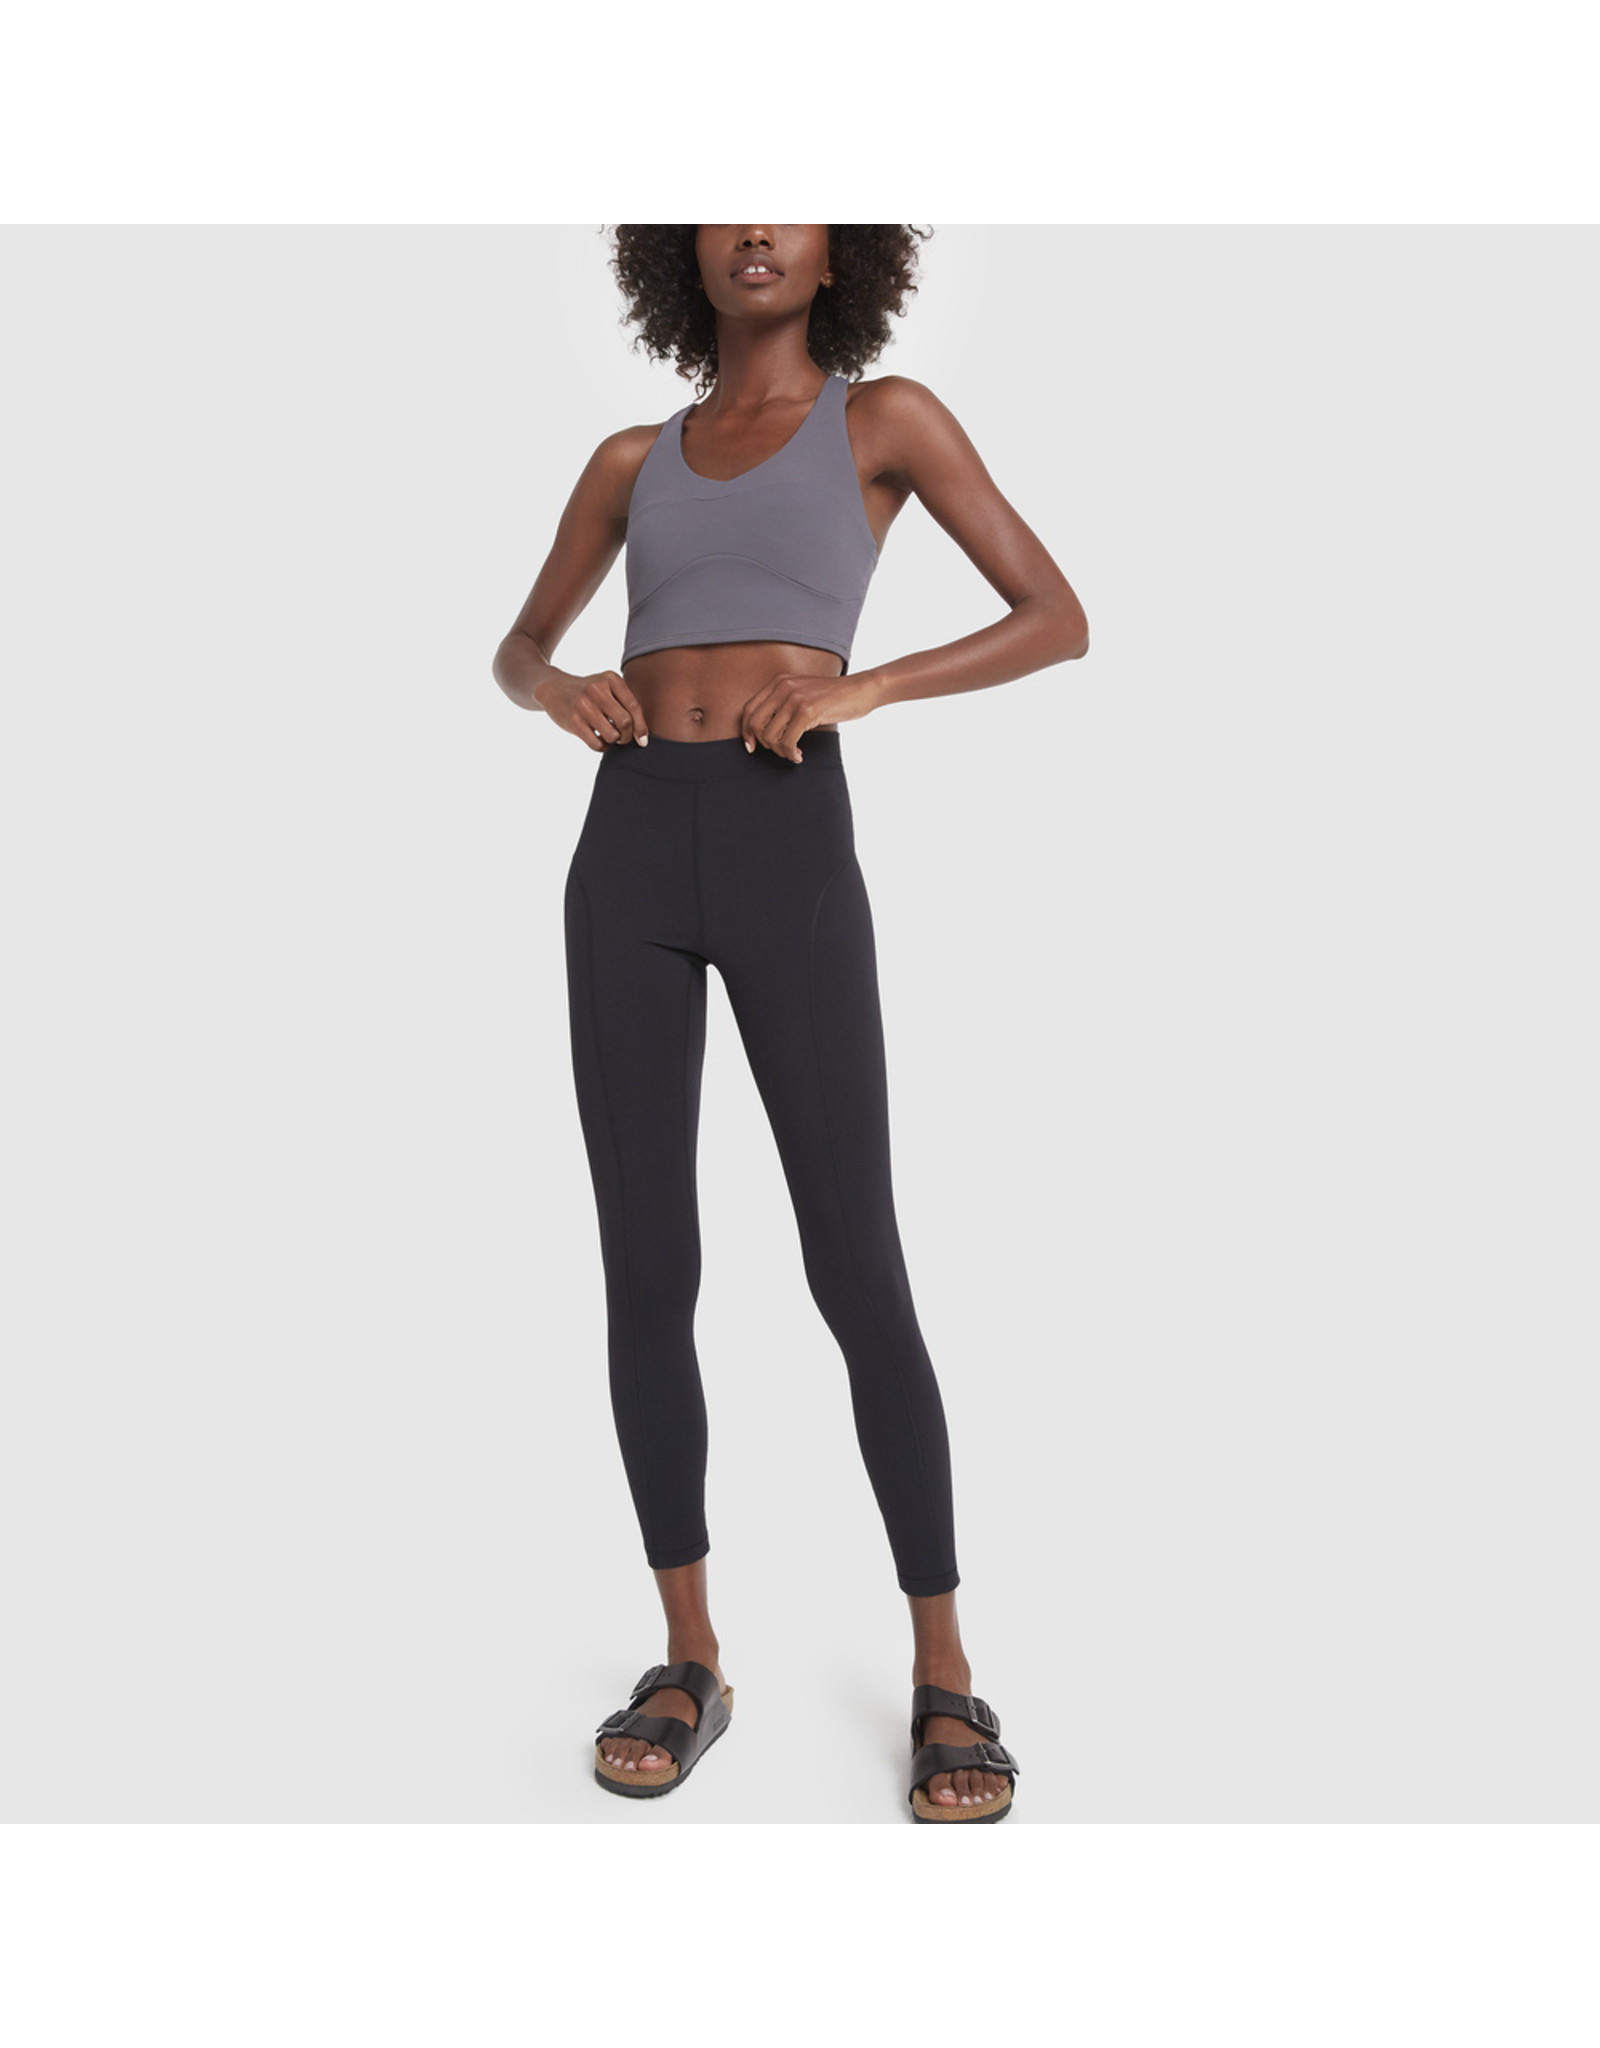 G. Sport G. Sport Low-Impact Leggings (Color: Black, Size: XS)